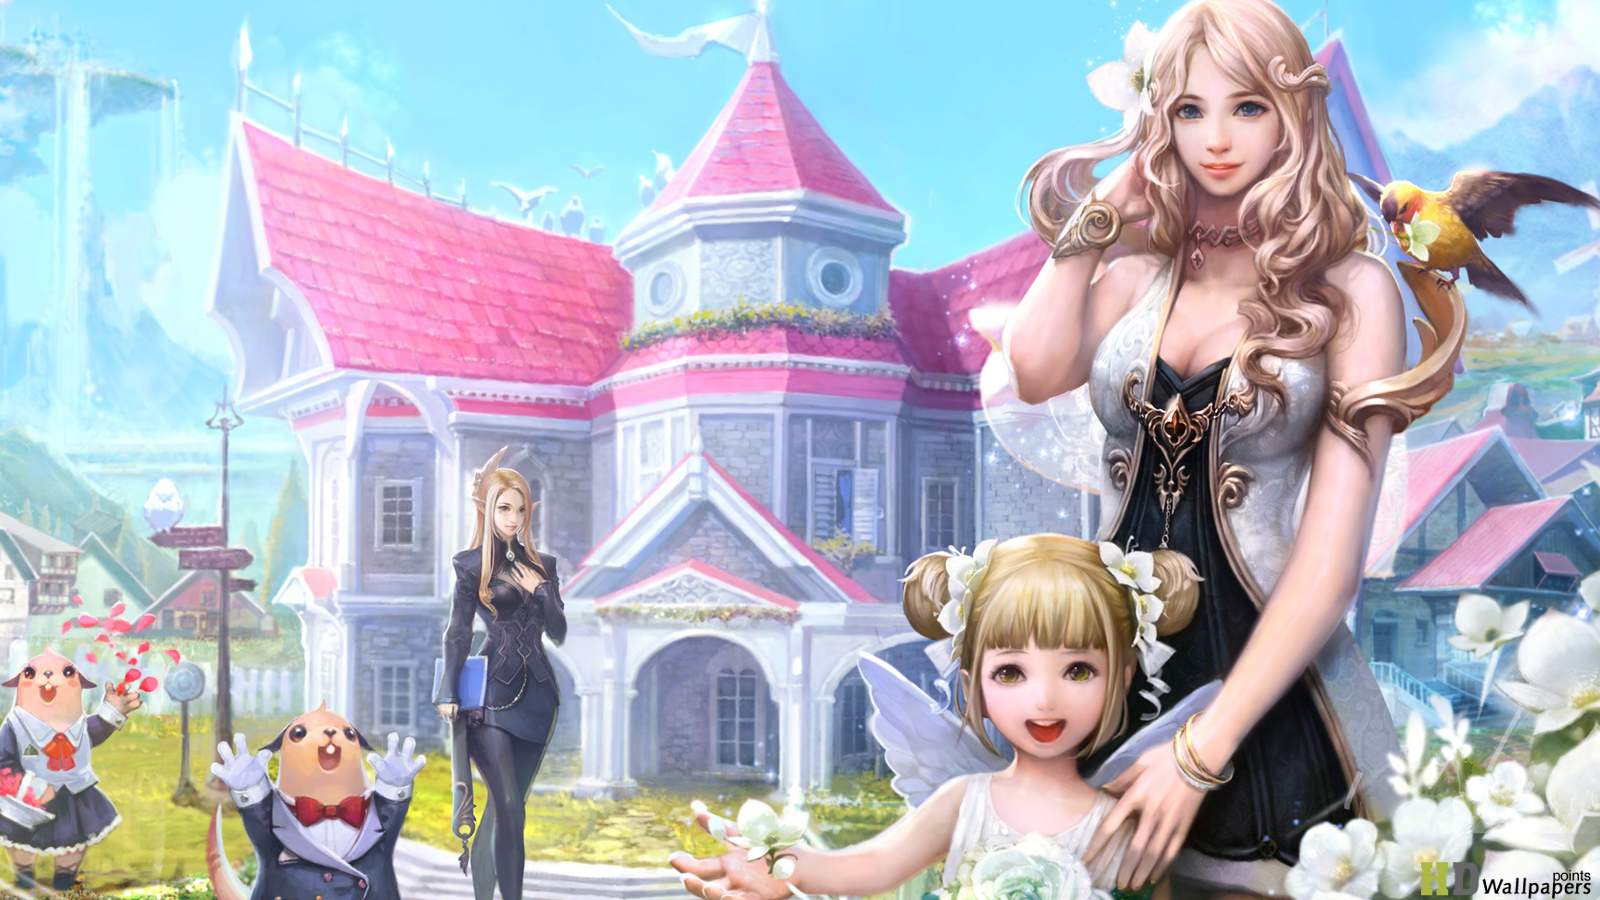 Aion Game Anime hd wallpapers 2013 HD Wallpaper 1600x900